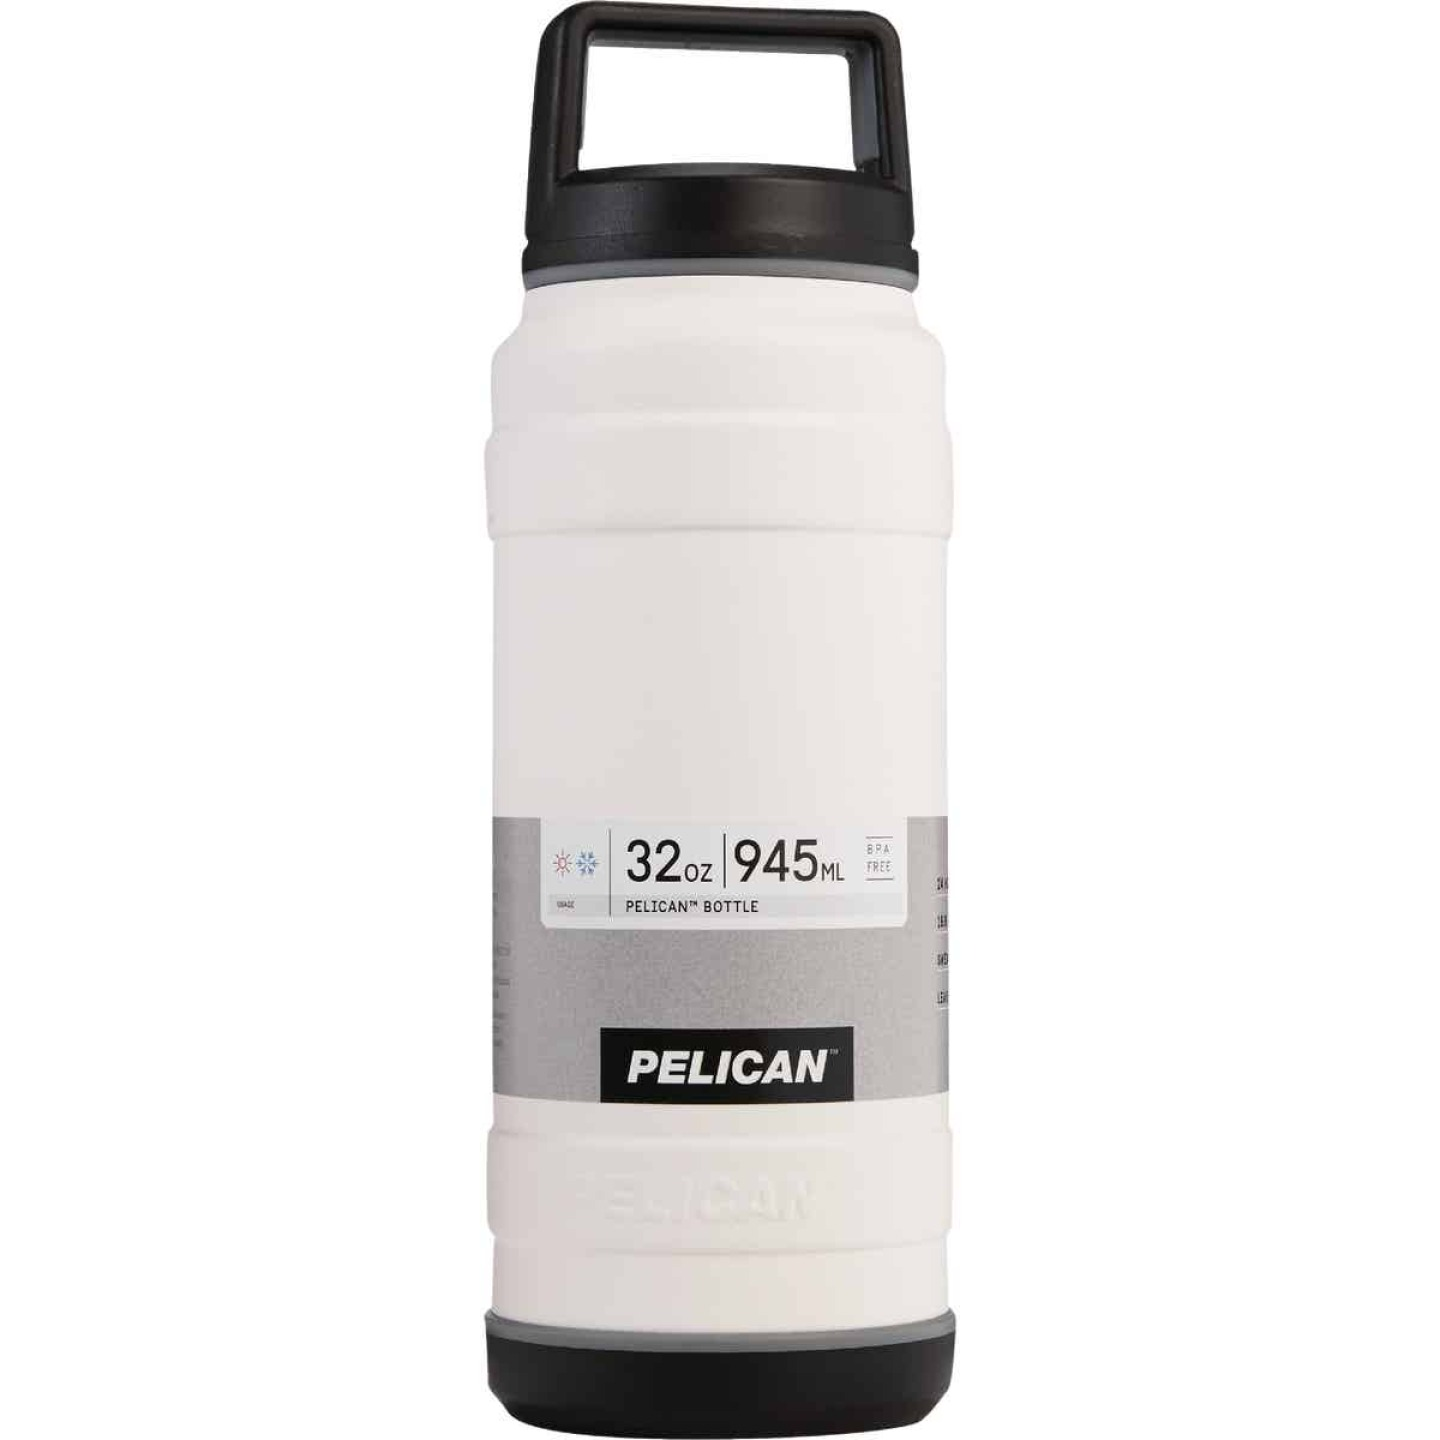 Pelican 32 Oz. White Stainless Steel Travel Bottle Image 1